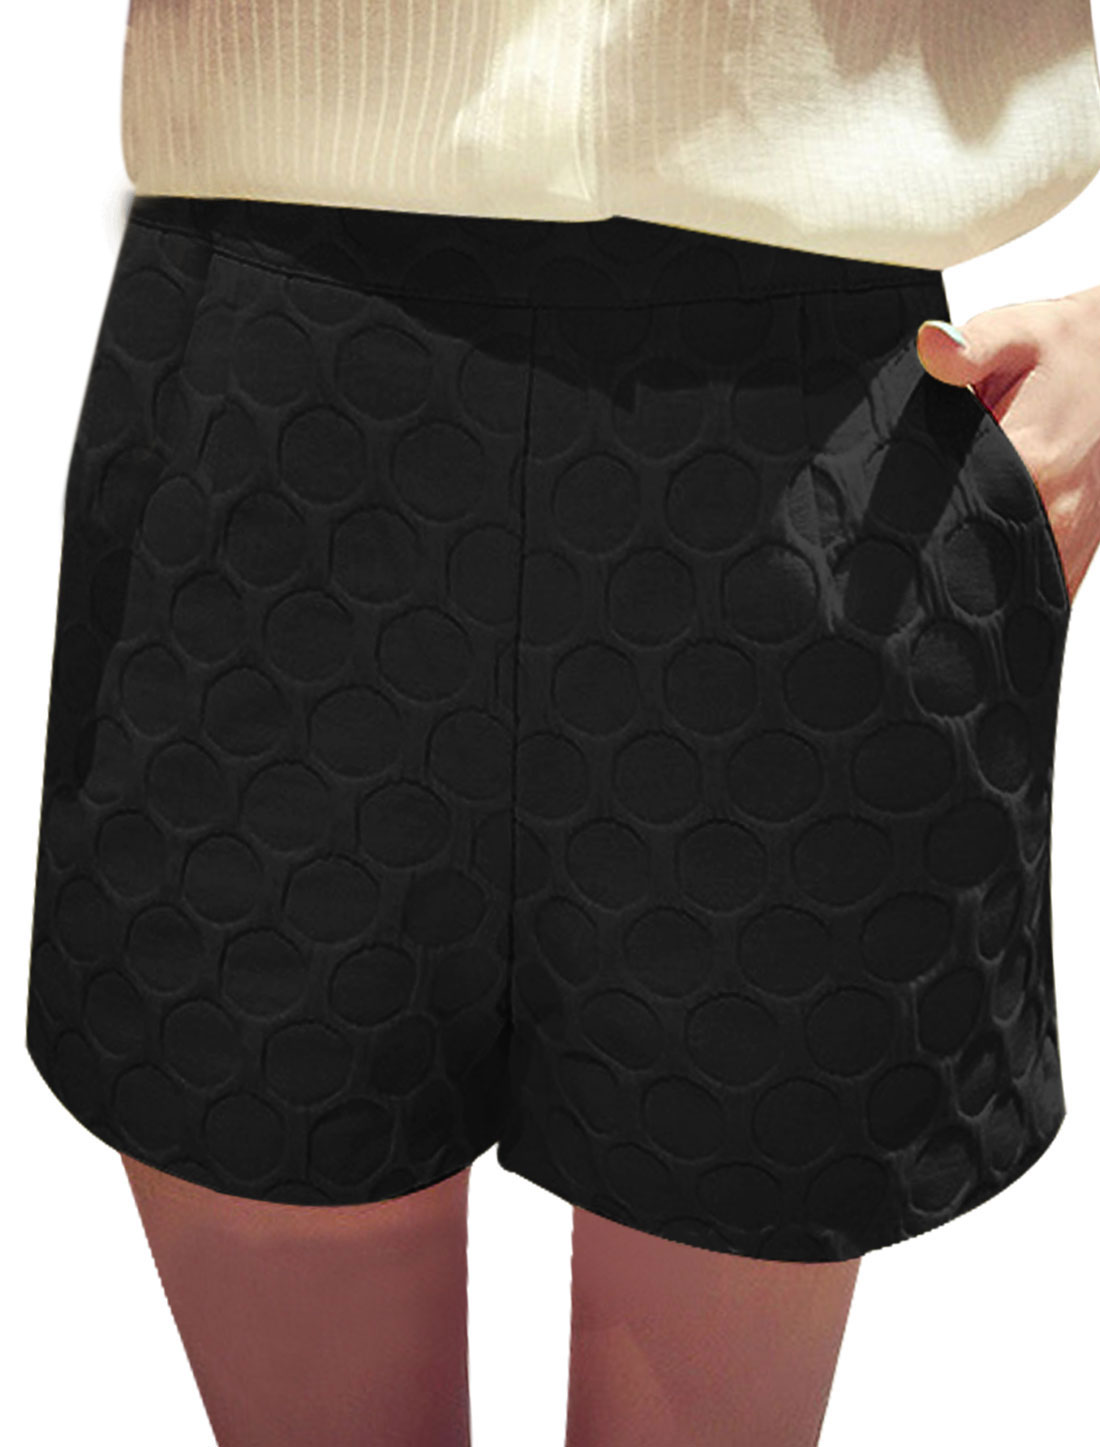 Women Hidden Zipper Back Textured High Waist Casual Shorts Black S